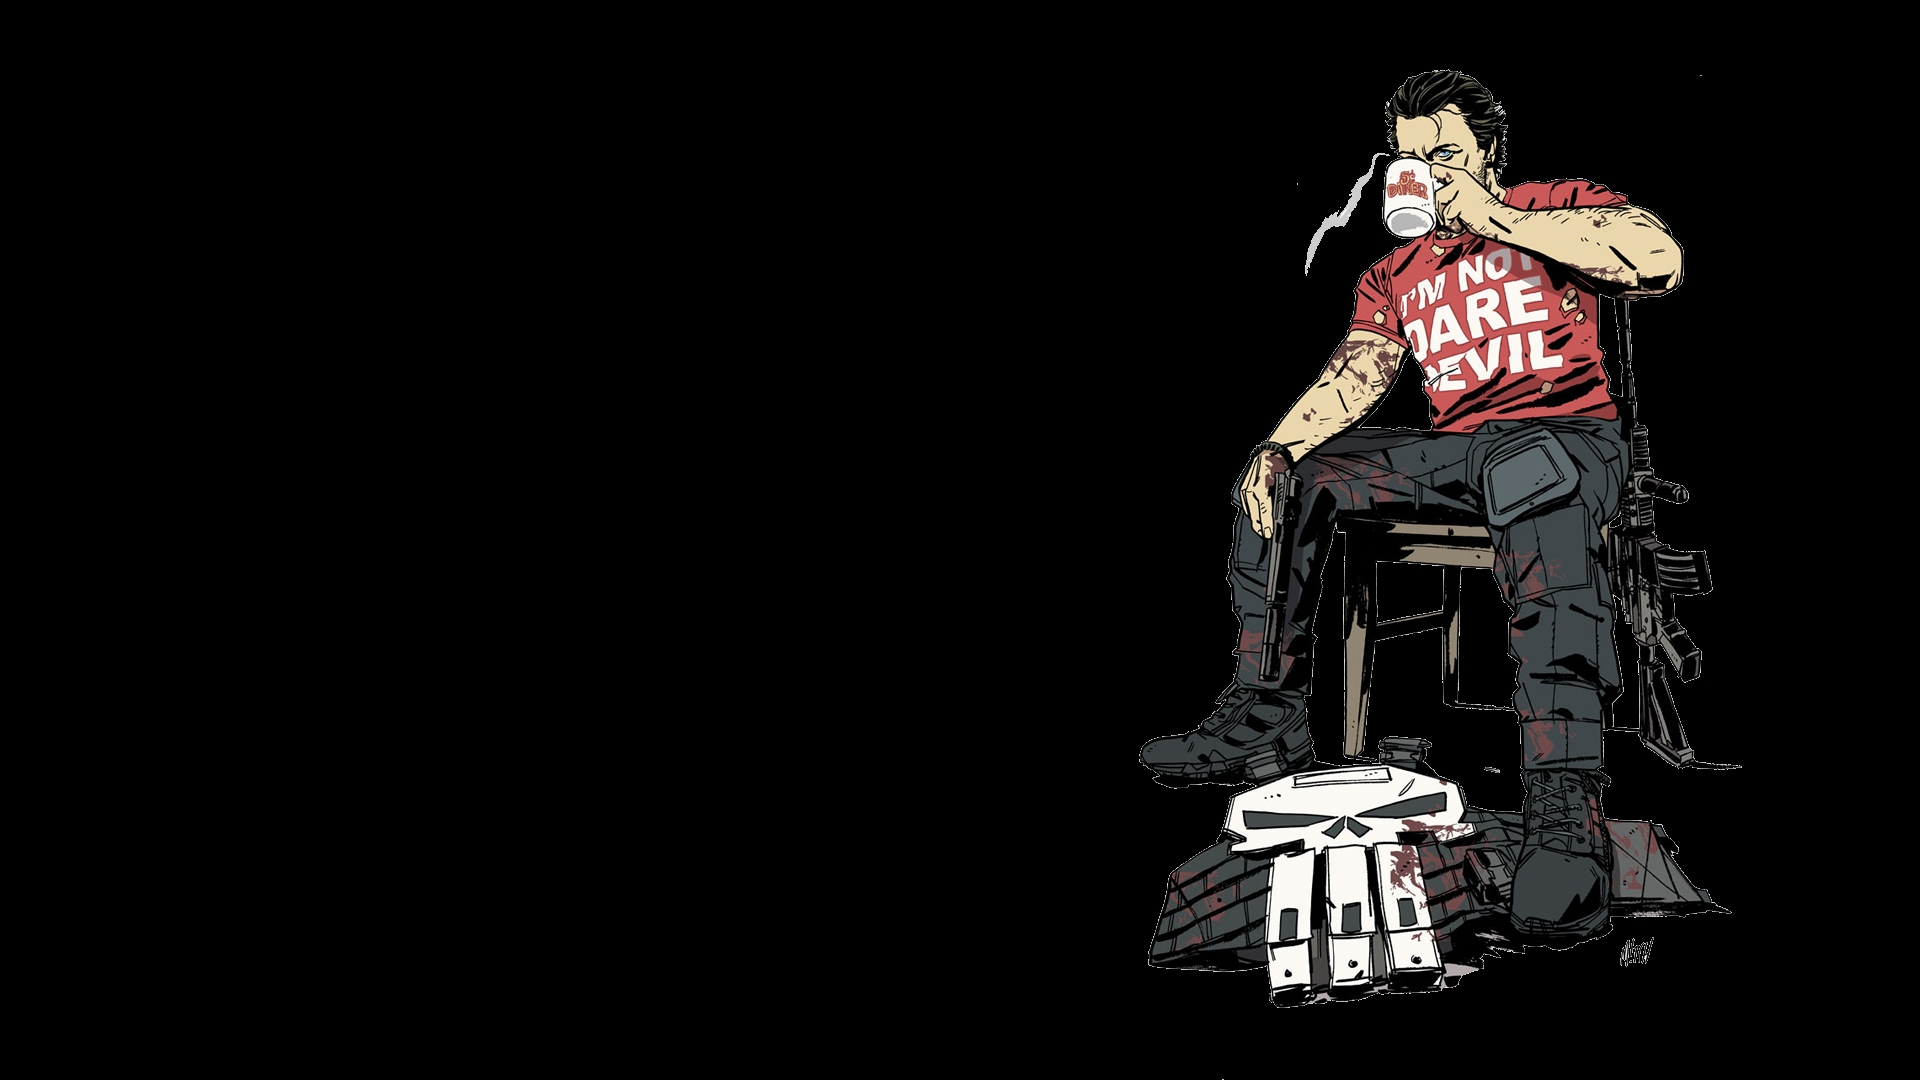 The Punisher Computer Wallpapers, Desktop Backgrounds | 1920x1080 | ID ...